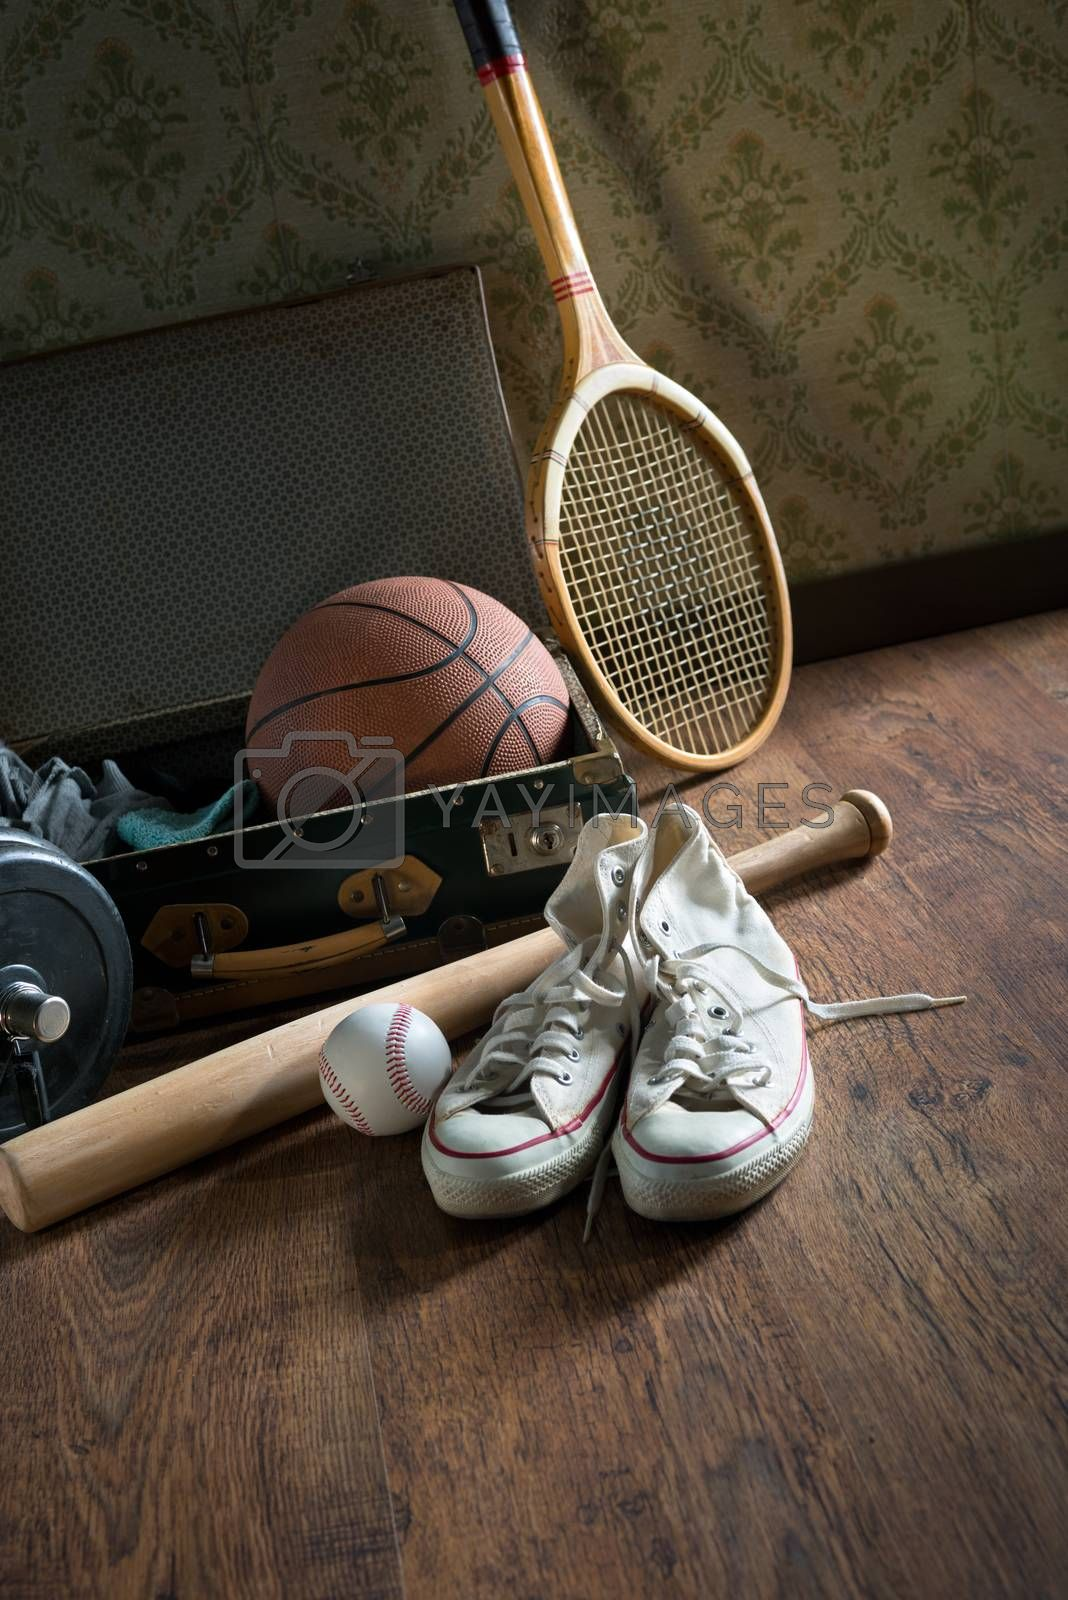 Vintage suitcase with sports equipment on wooden floor with canvas shoes on foreground.